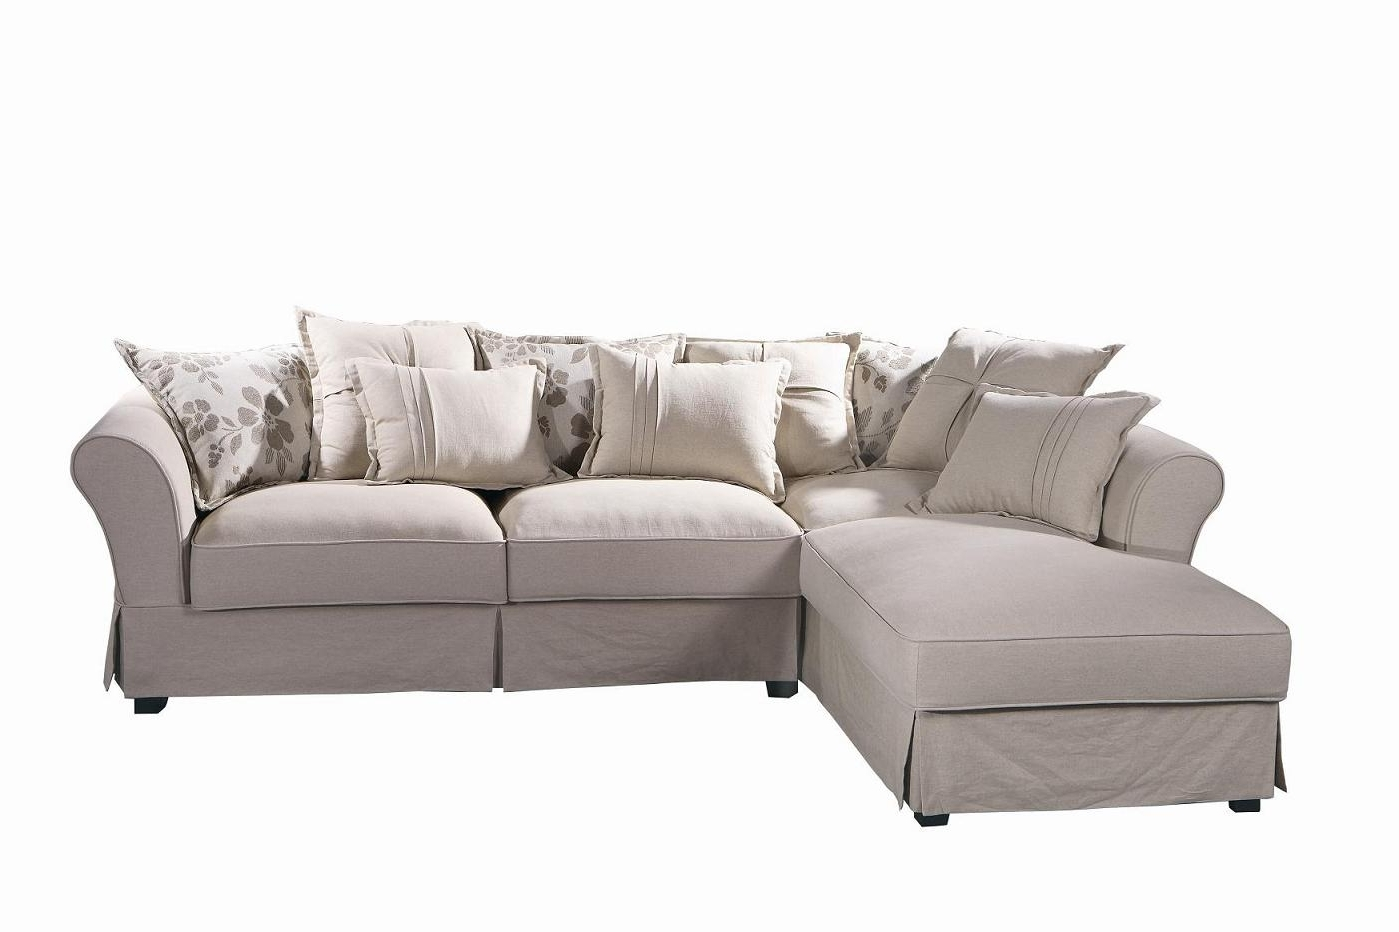 Best And Newest Nashville Sectional Sofas Intended For Low Price Sectional Sofas – Hotelsbacau (View 2 of 20)